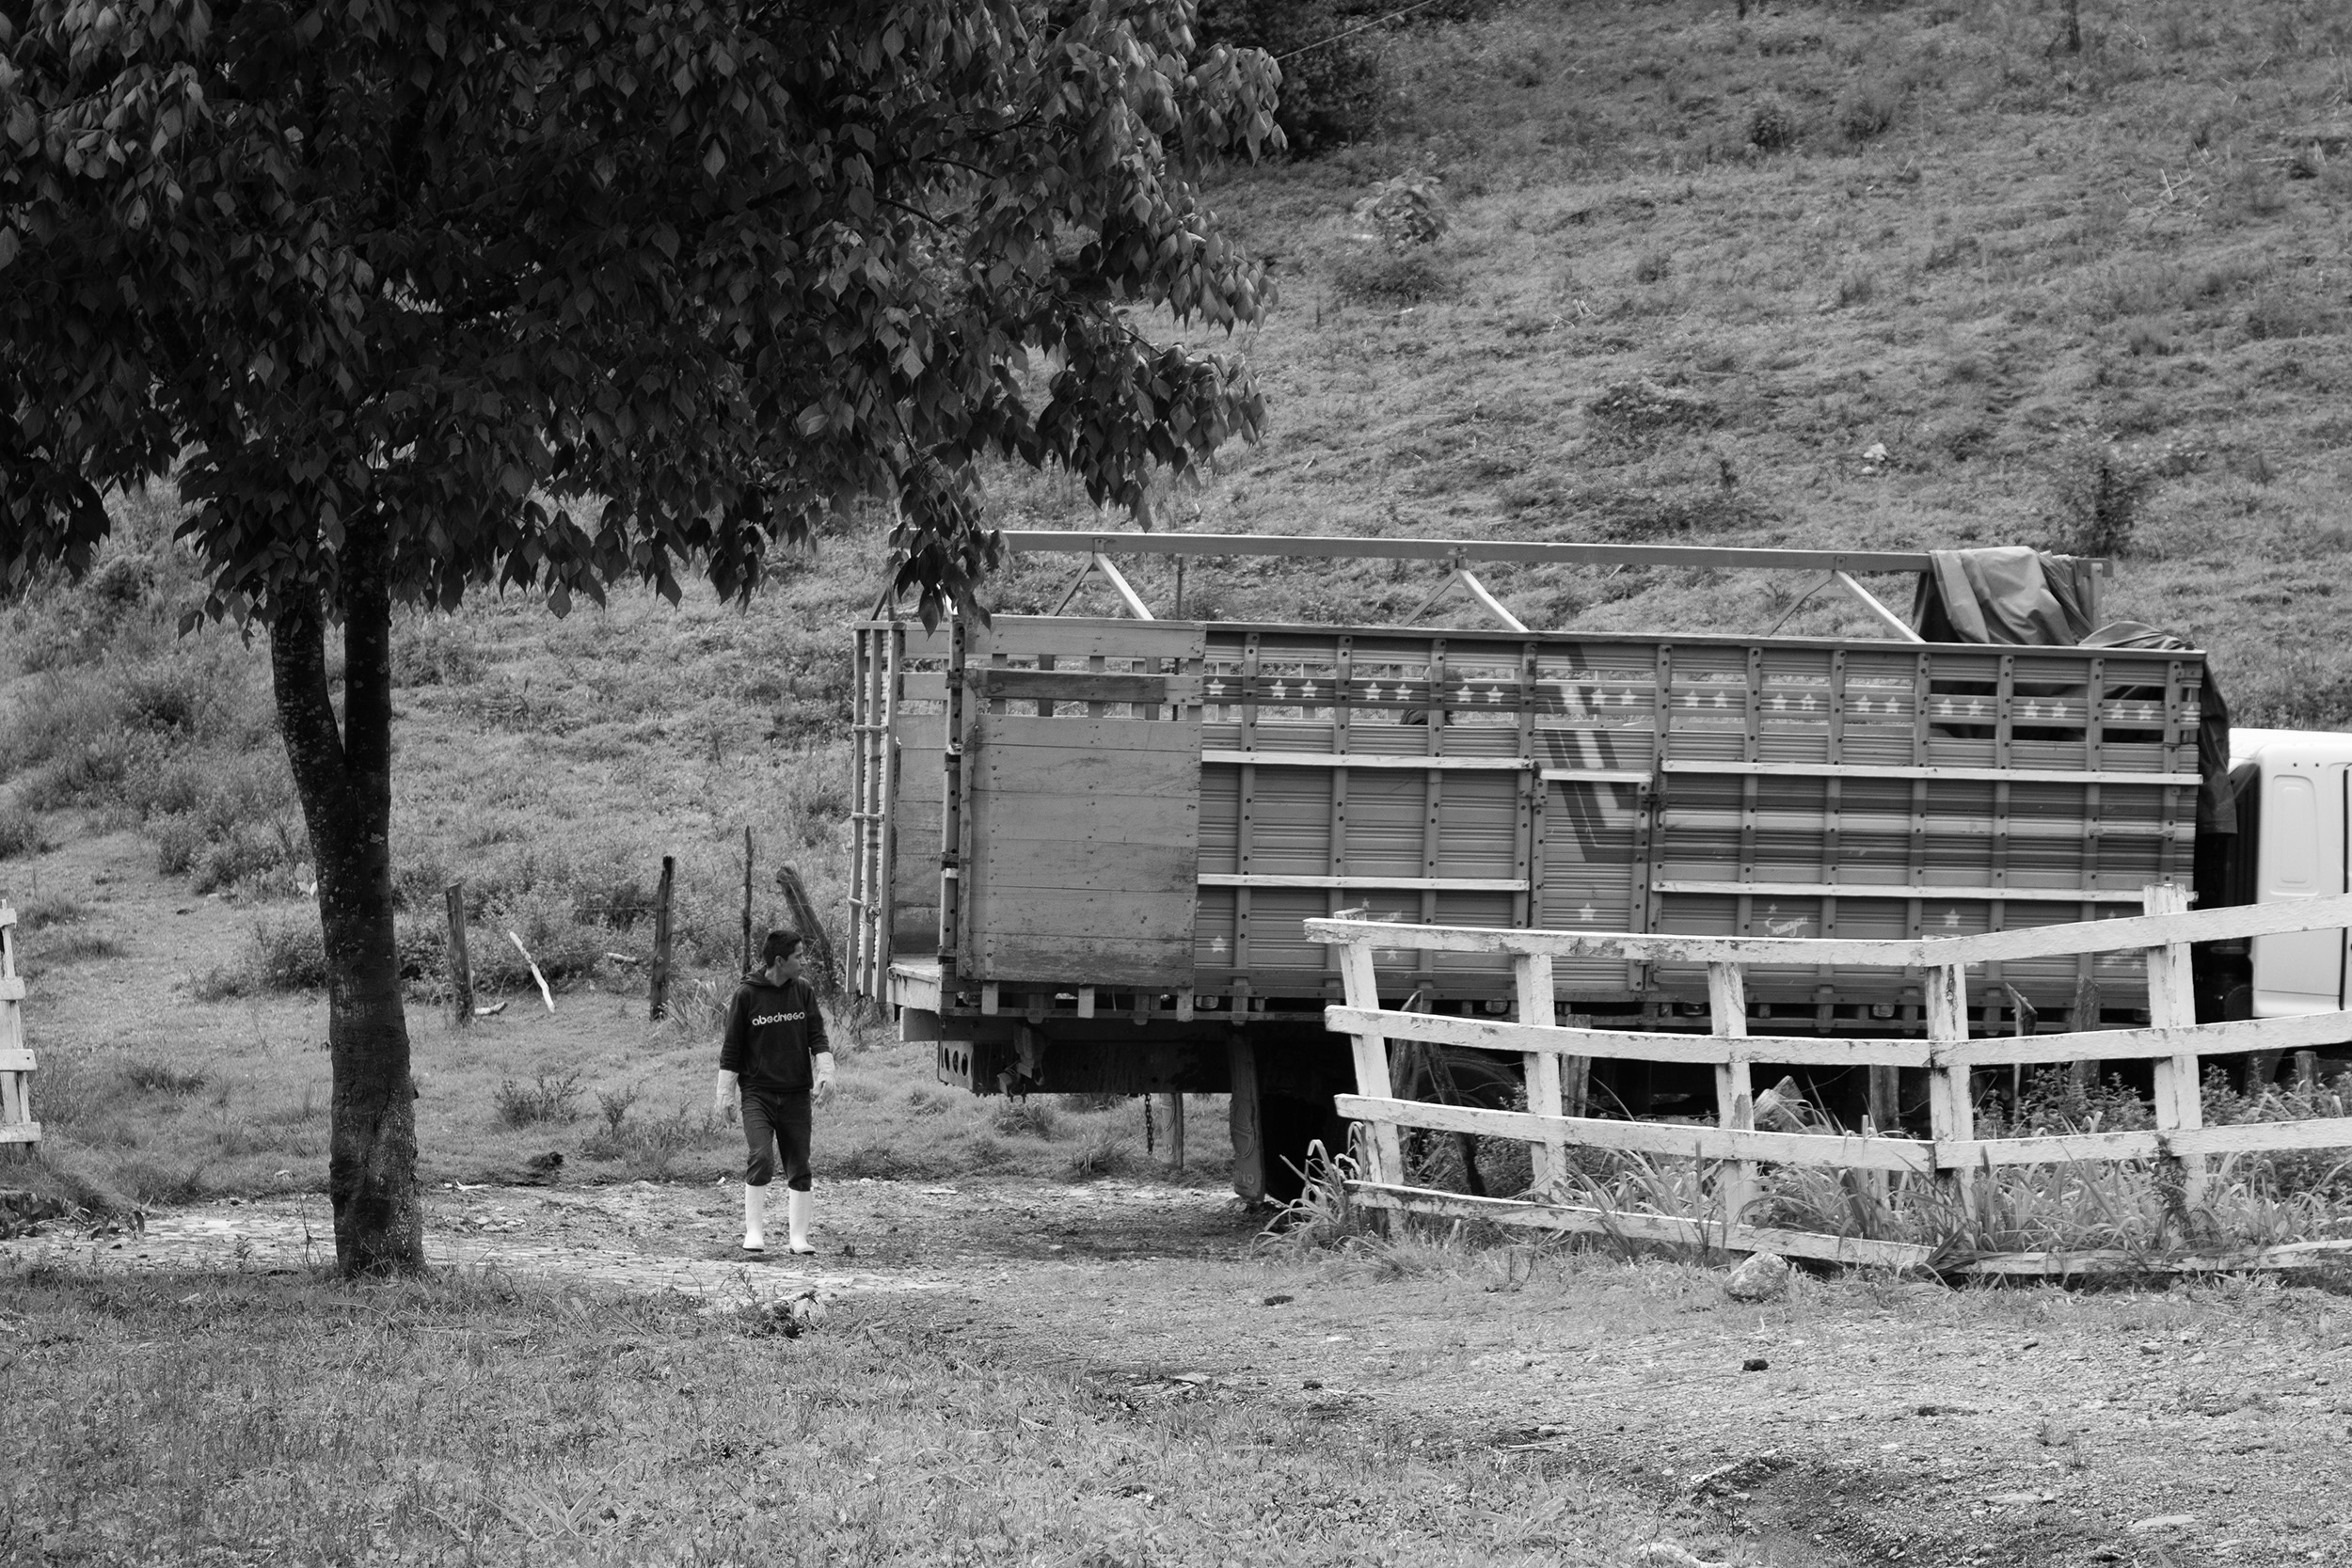 A young man helps guide the truck as it backs up to the honey processing plant.